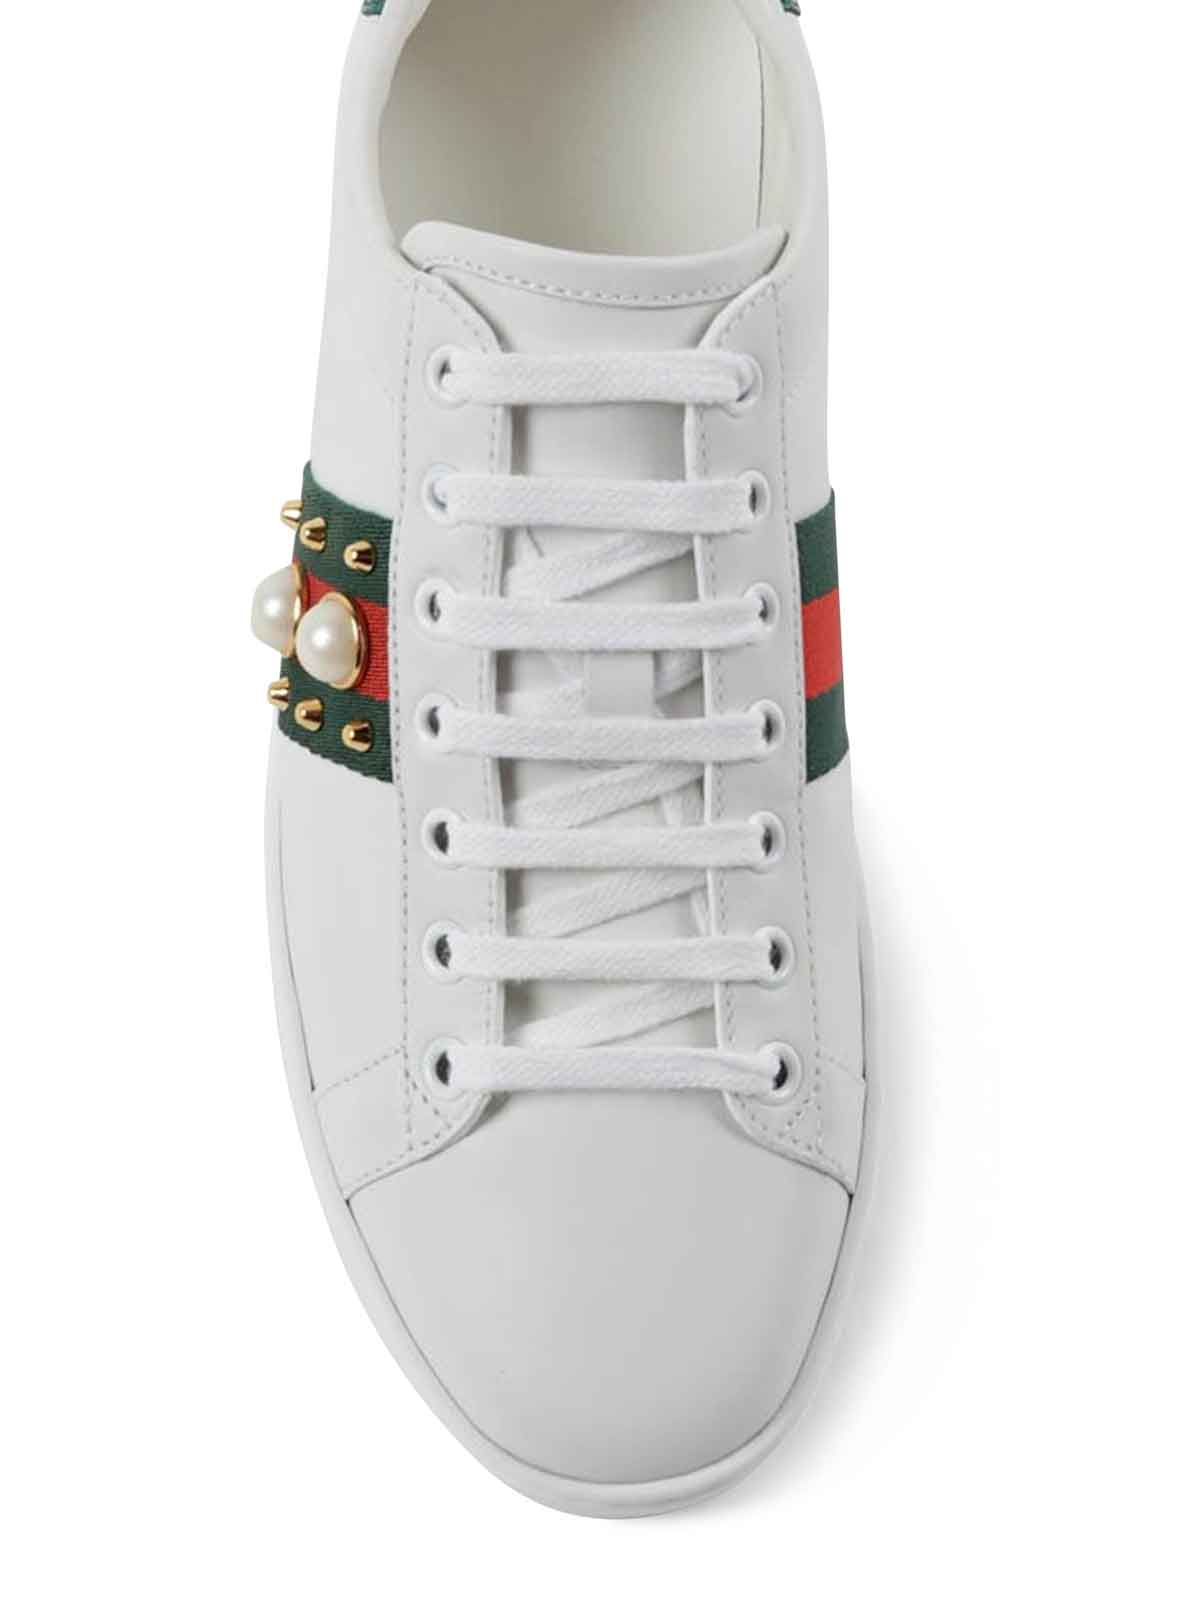 78d1f89ae242 Gucci - Ace sneakers - اسپرت،اسنیکرز - 431887A38G0 9064